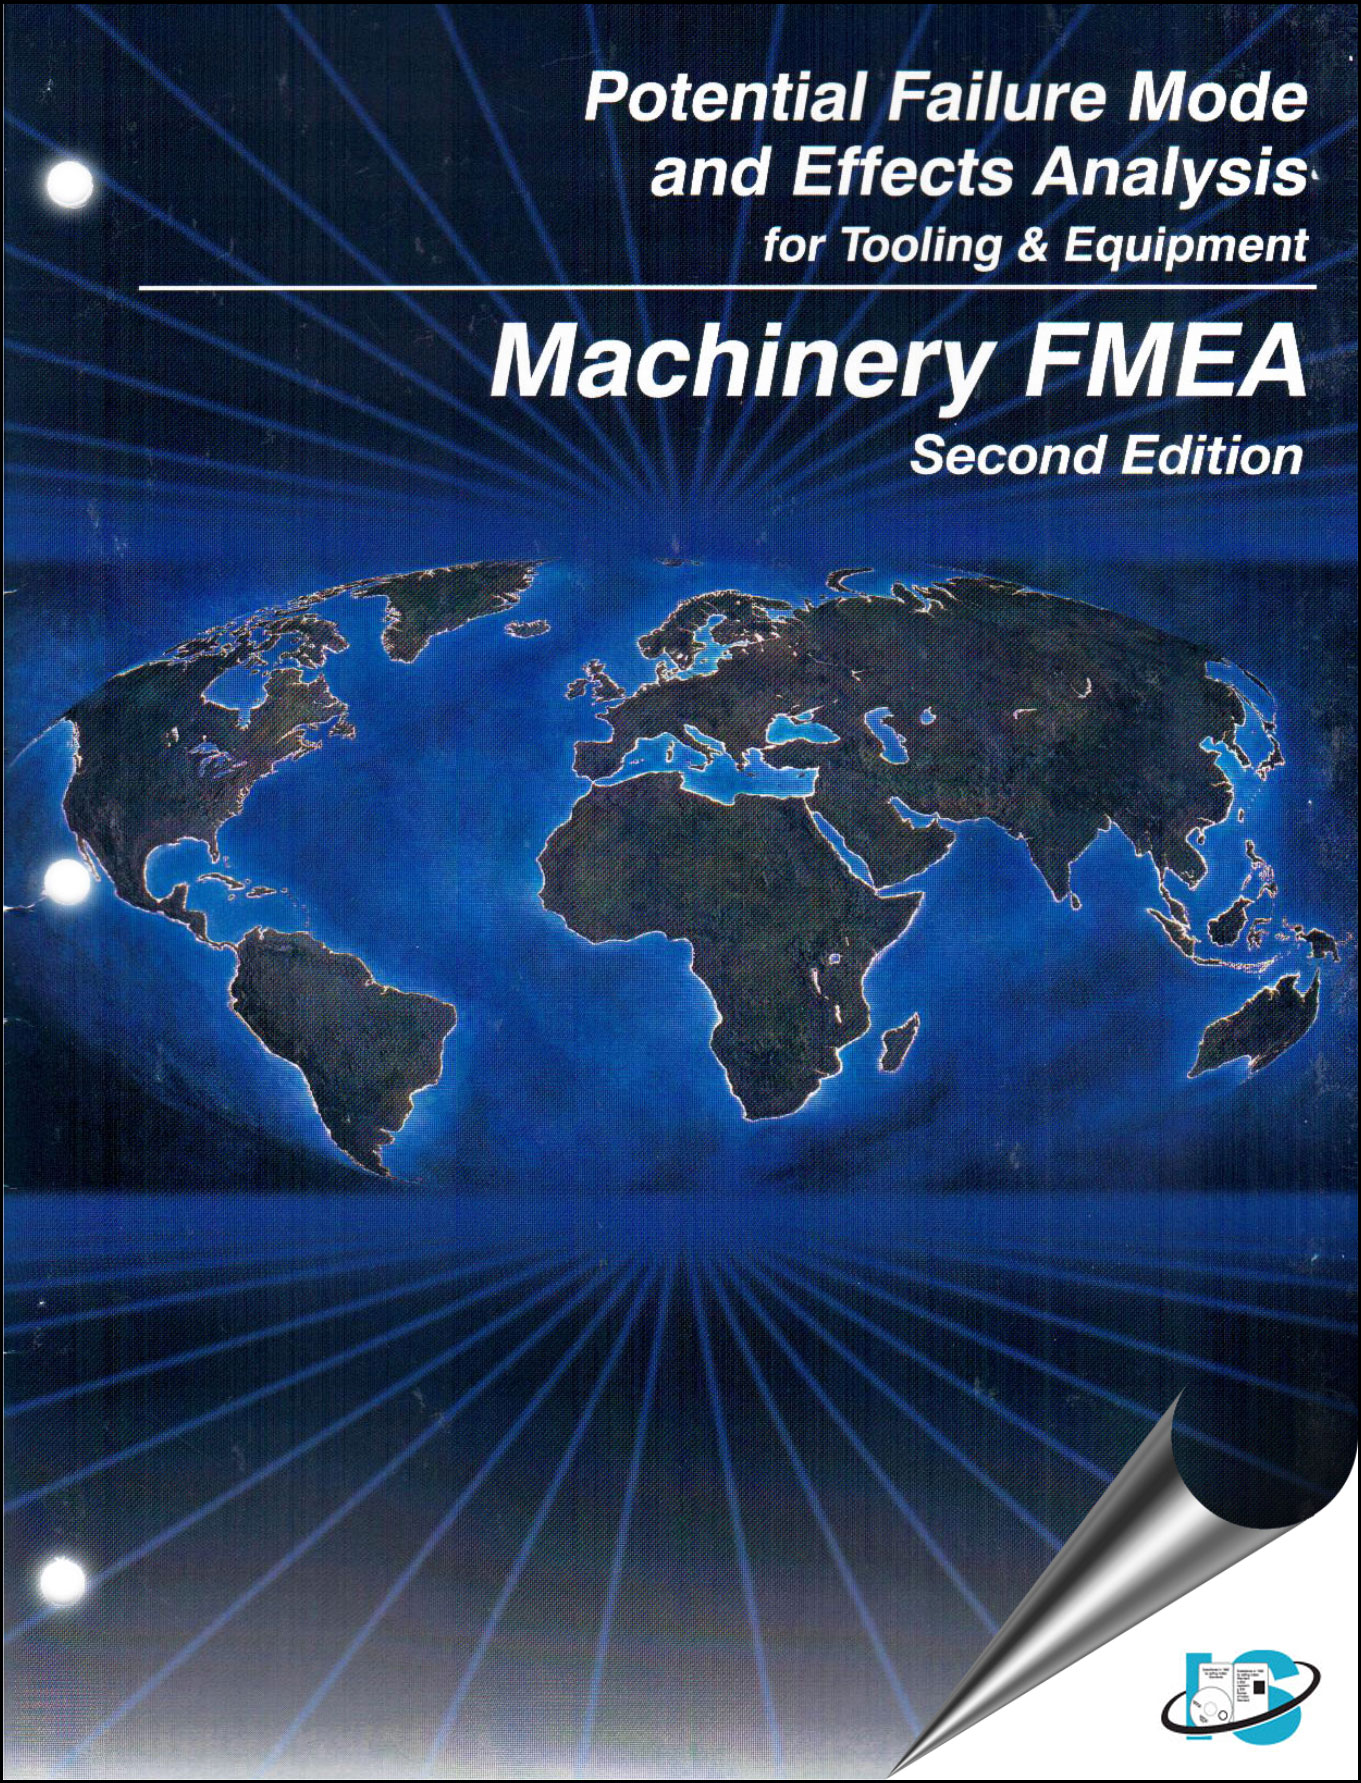 potential failure mode effects analysis for tooling equipment rh standardsmedia com aiag fmea manual 4th edition free download aiag fmea manual product code fmea-4